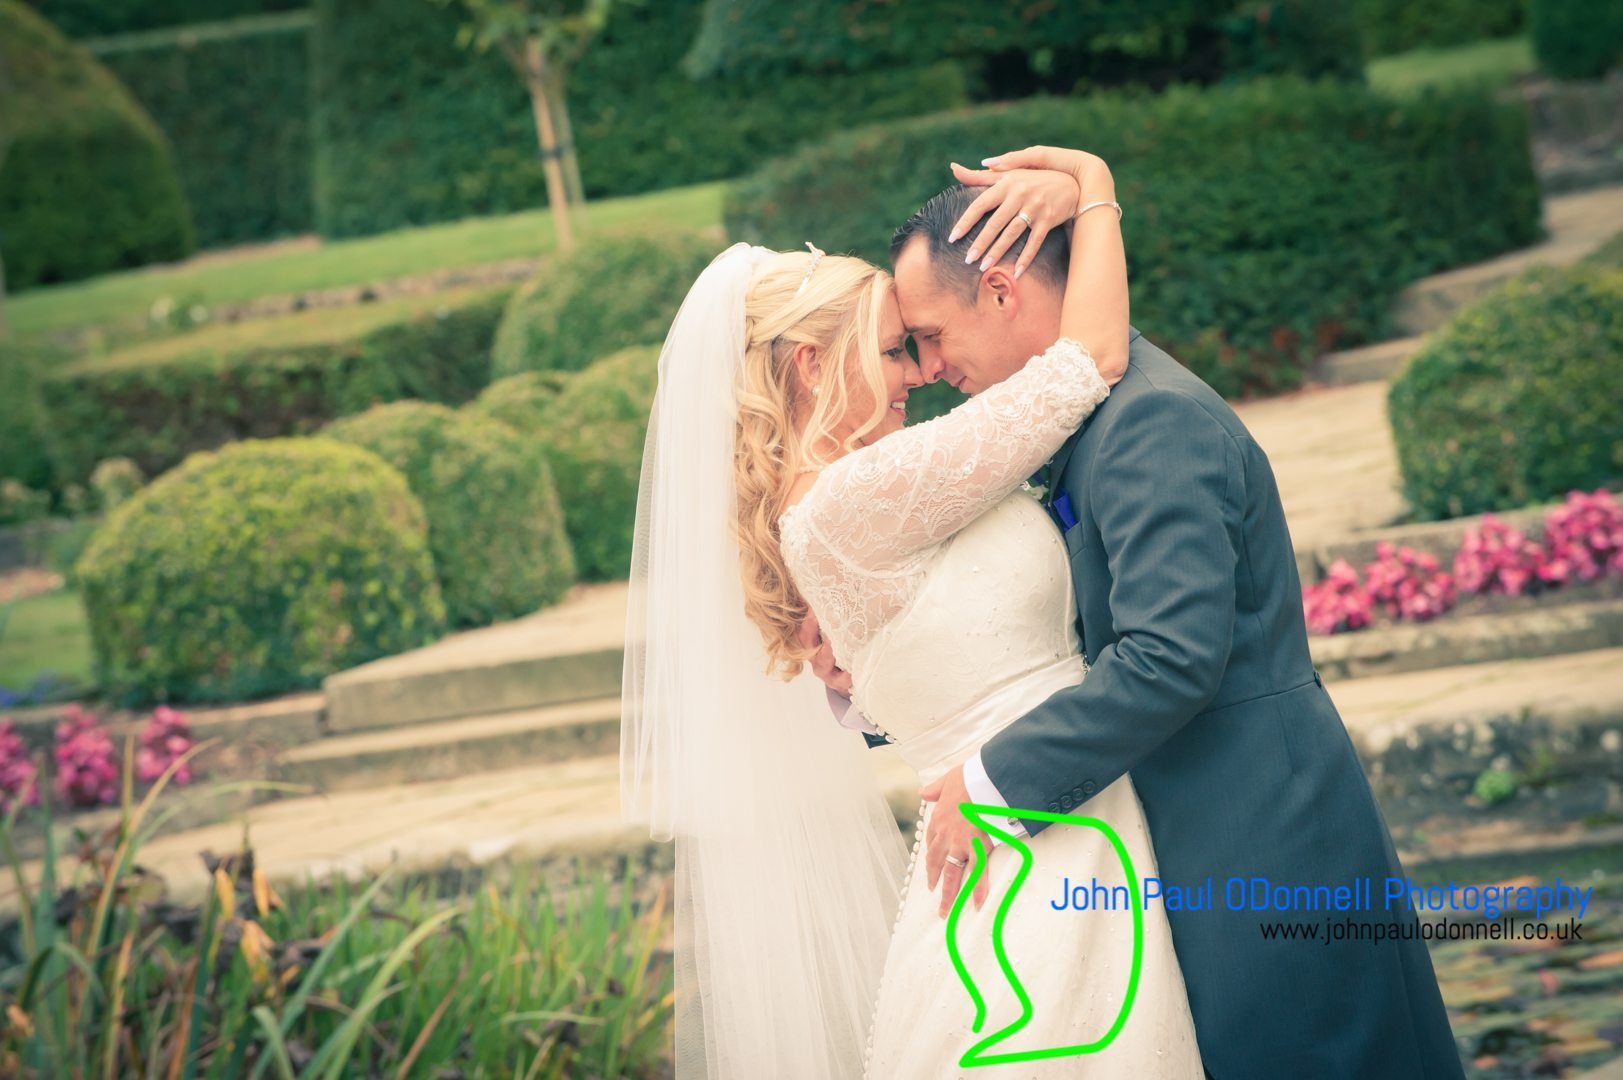 This image is of the bride and groom about to kiss on their wedding day in the beautiful gardens fanhams hall.